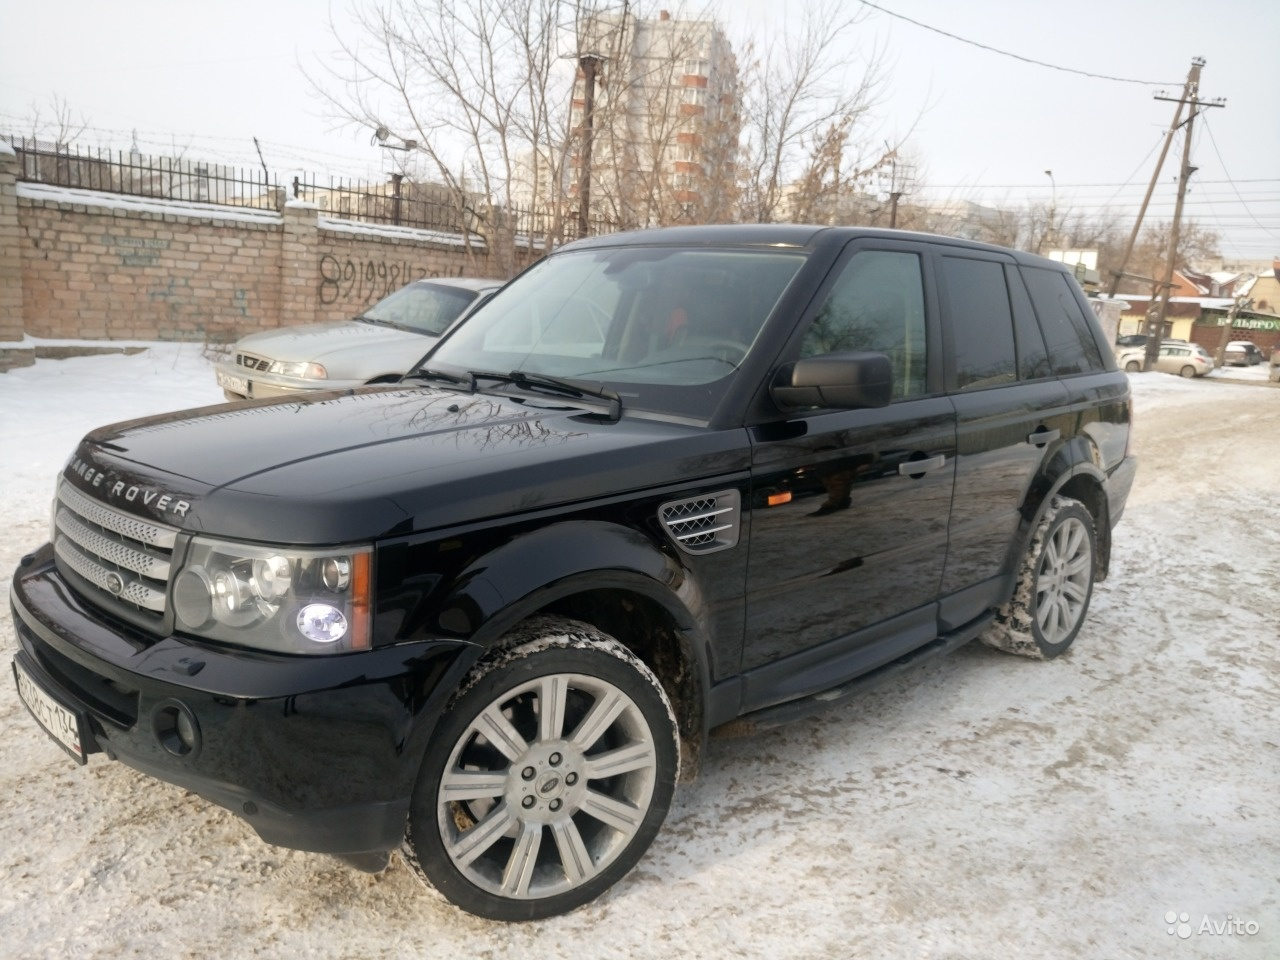 LEND ROVER RENGE ROVER SPORT